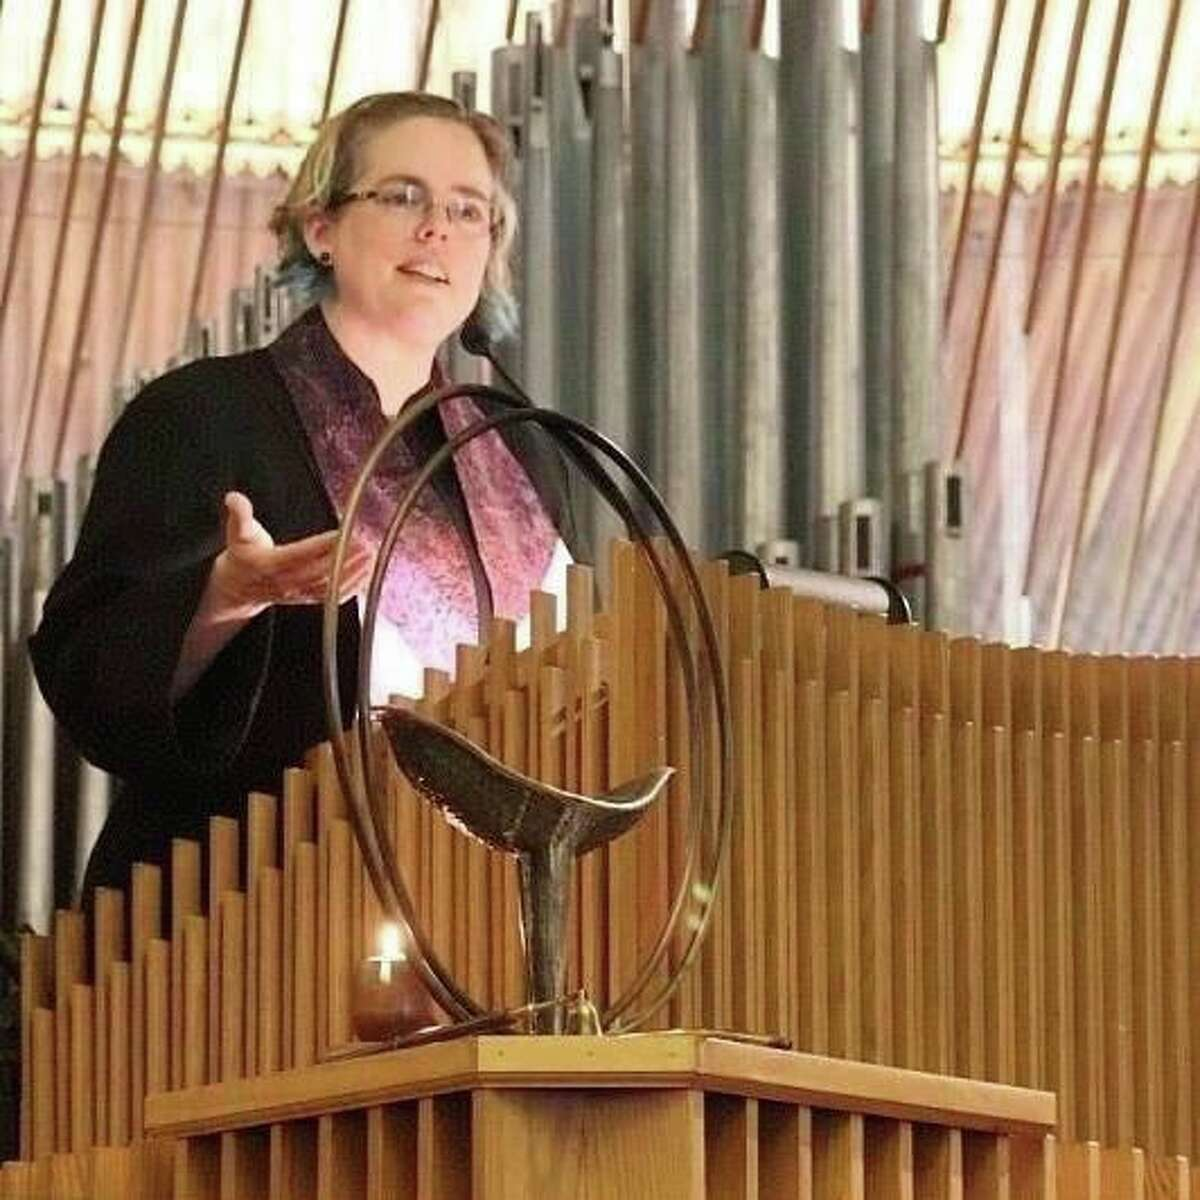 The Rev. Heather Rion Starr is a consulting minister at the Unitarian Universalist Congregation of Danbury.